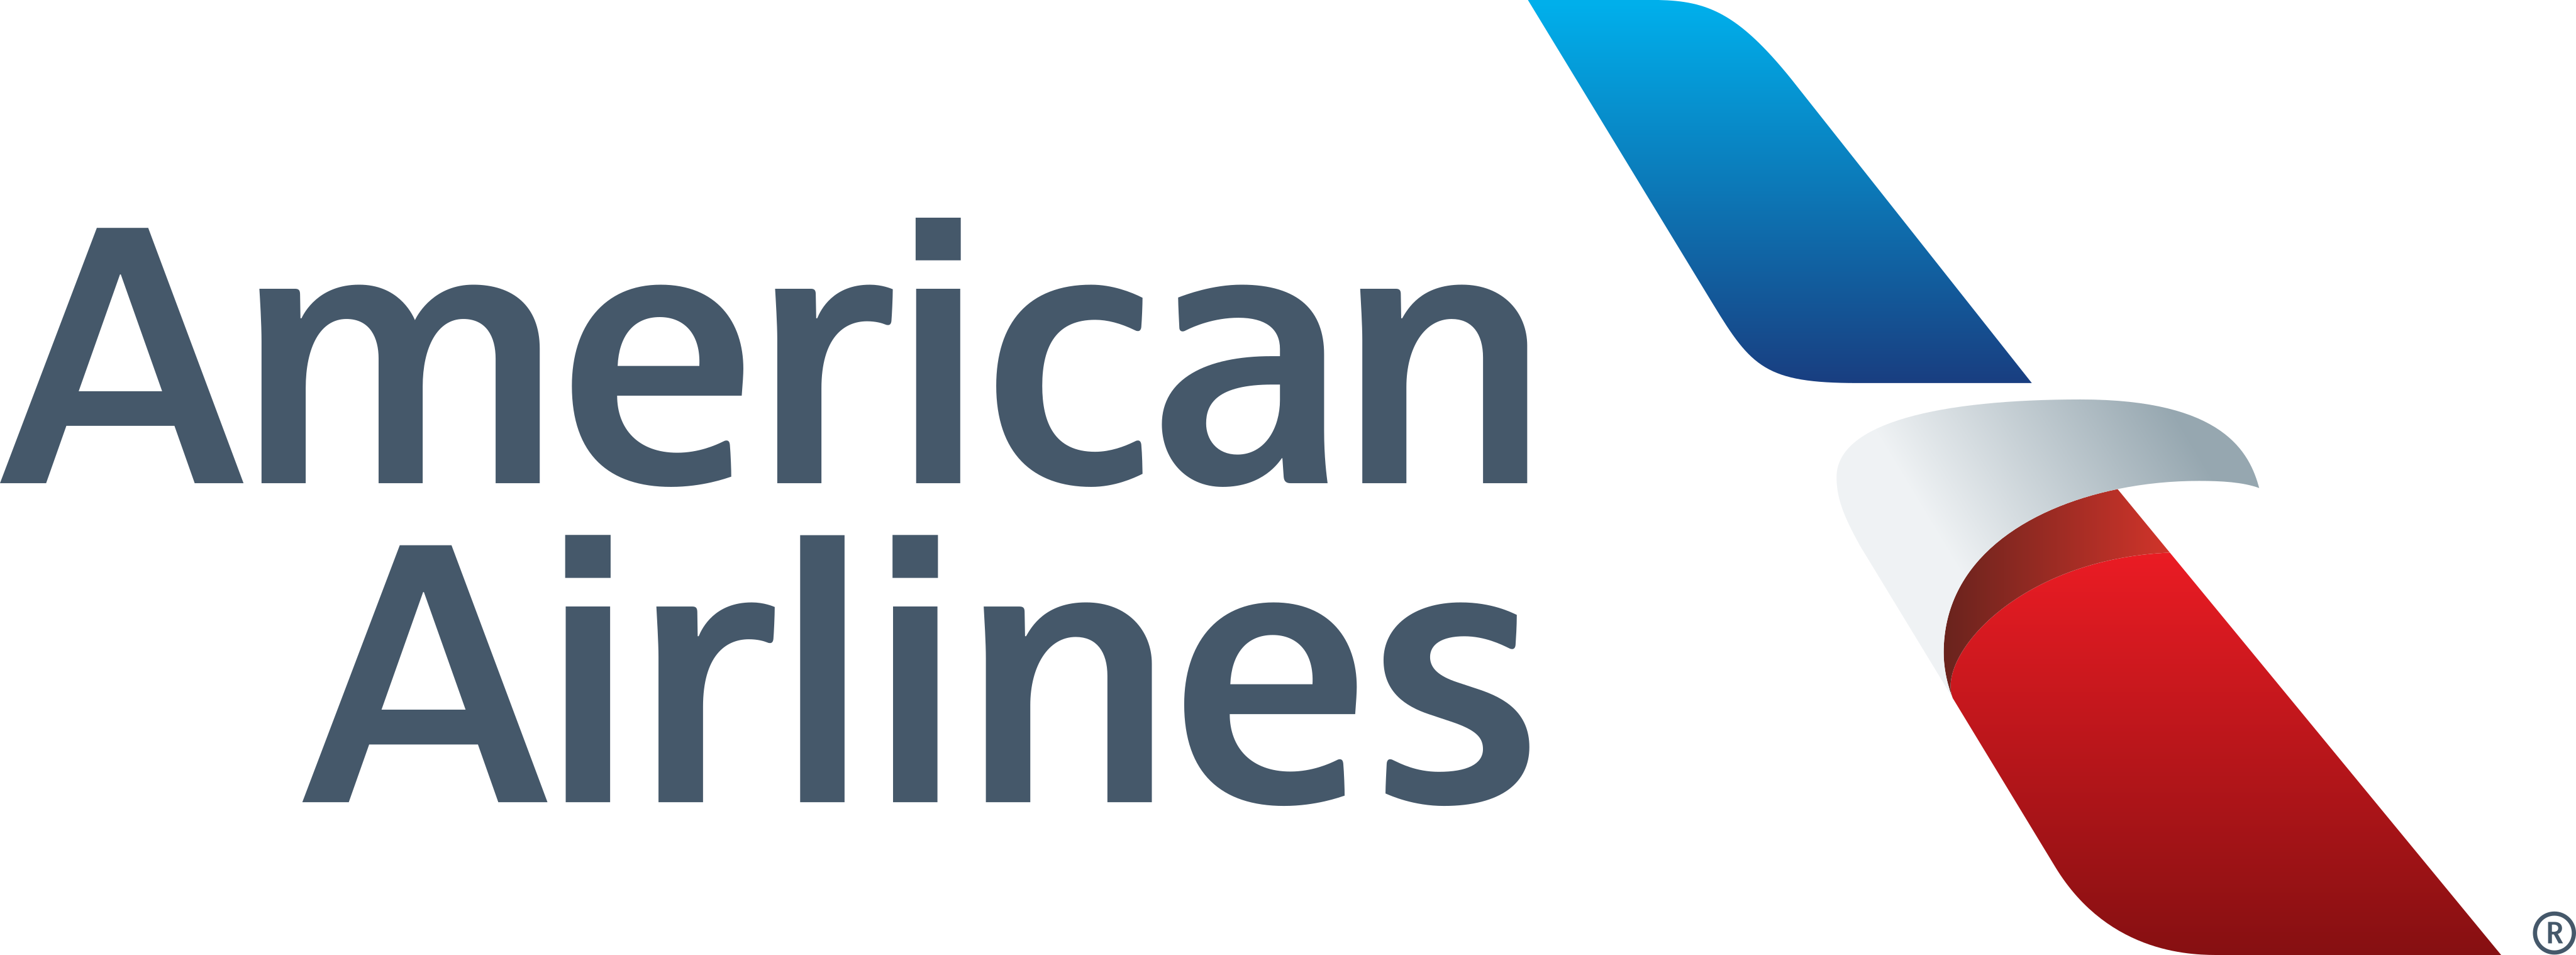 american-airlines-logo-1